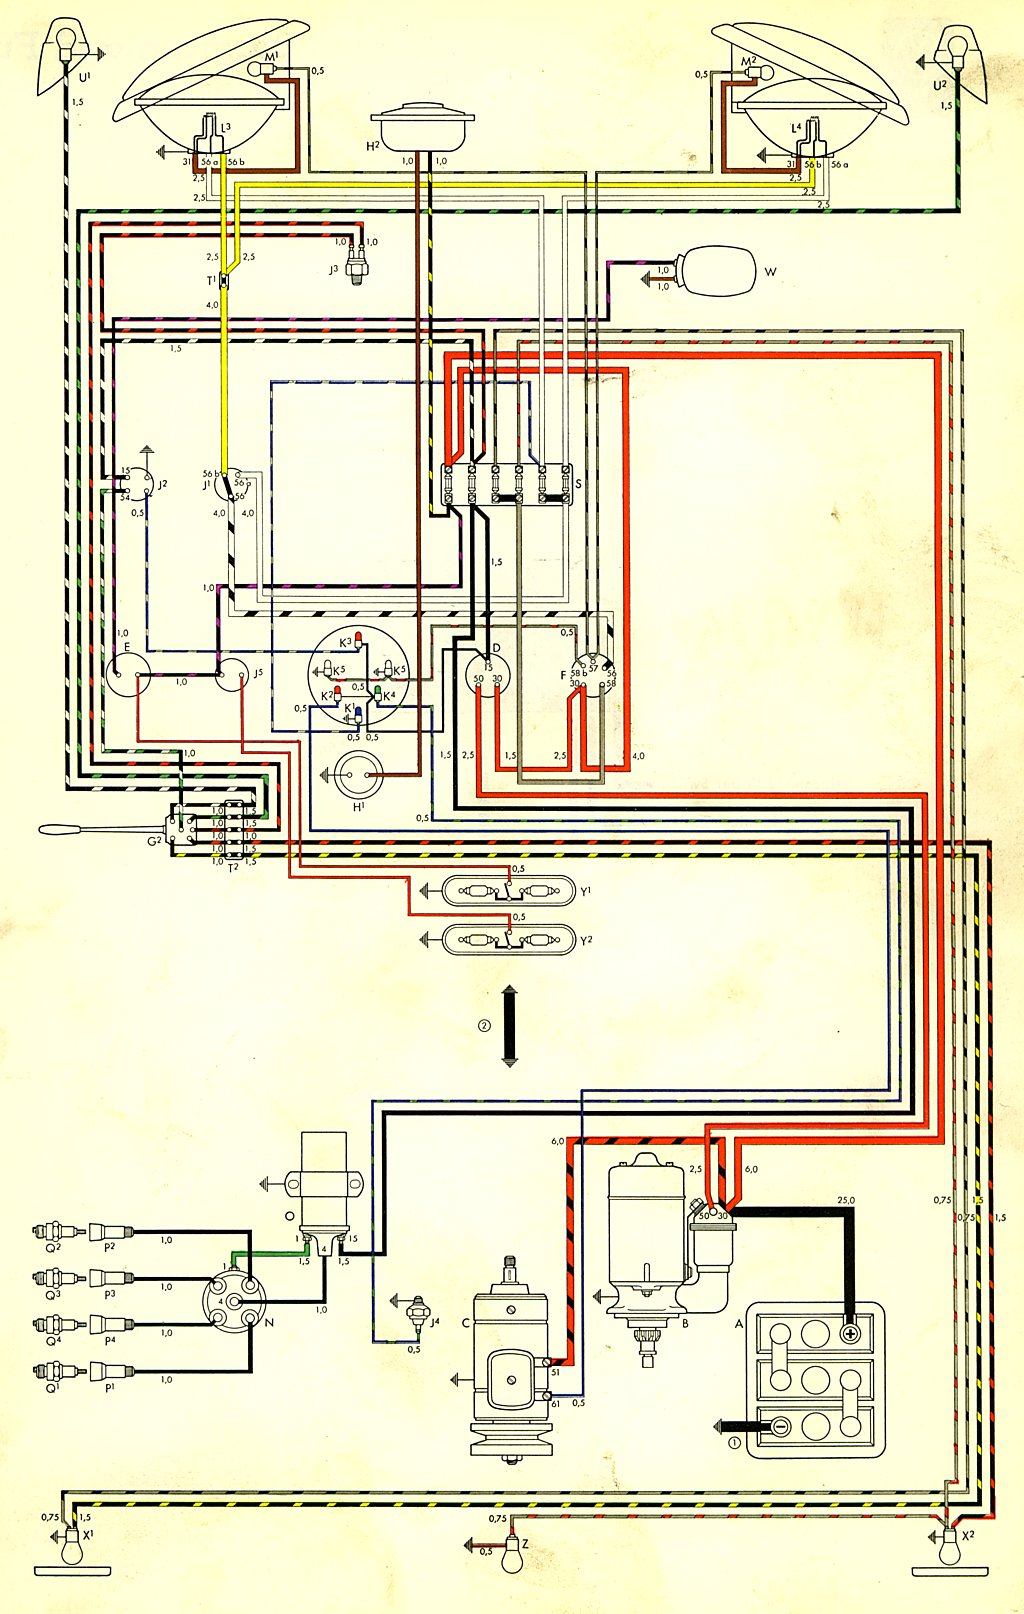 2001 vw beetle wiring diagram Collection-bus 59 USA 7-h